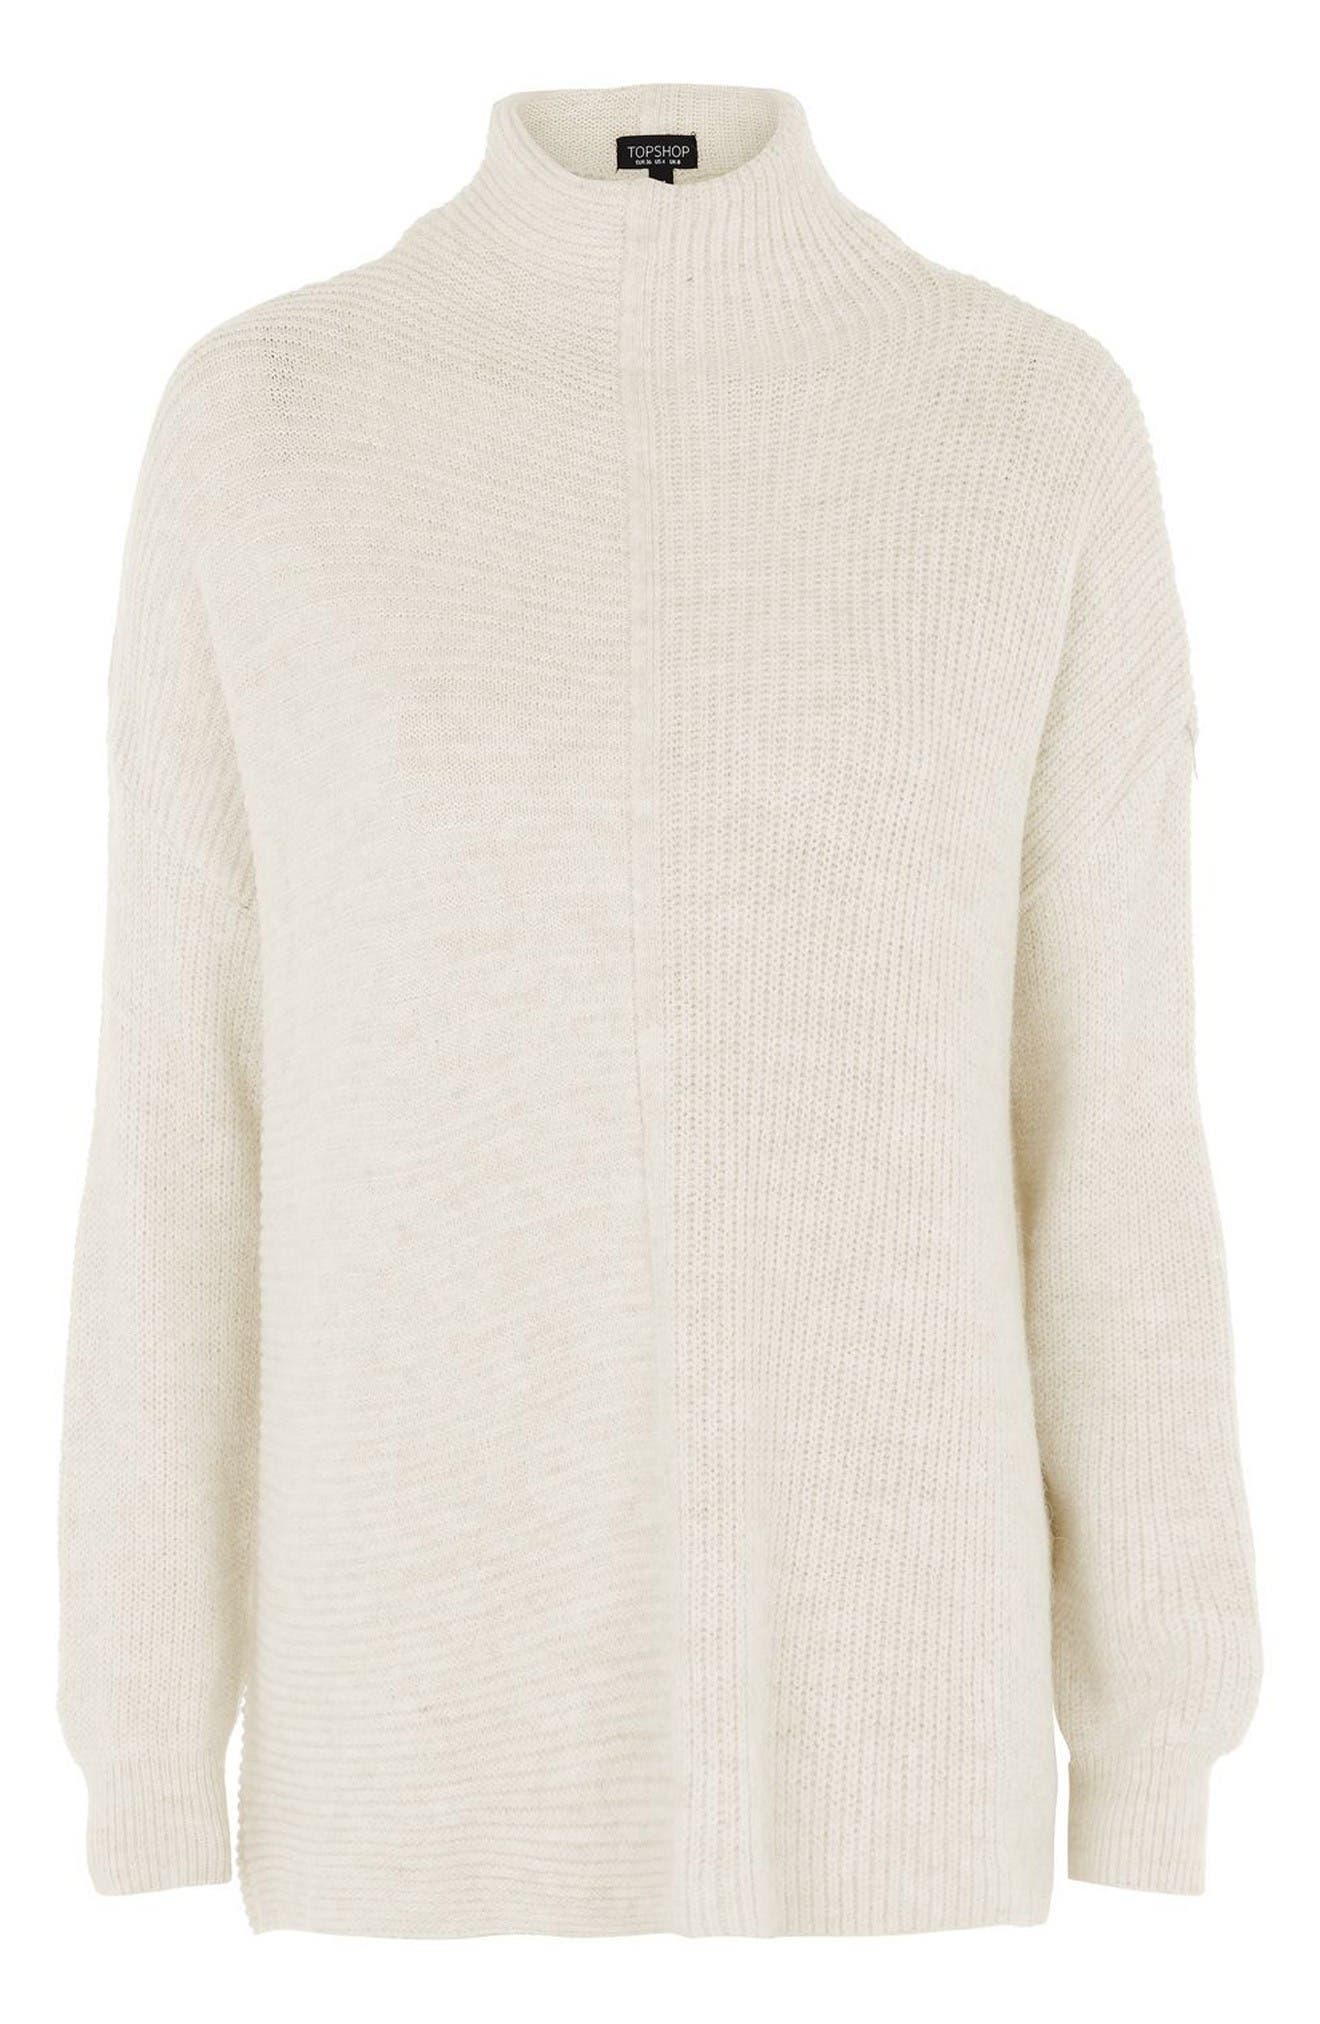 Alternate Image 4  - Topshop Funnel Neck Mixed Knit Sweater (Regular & Petite)